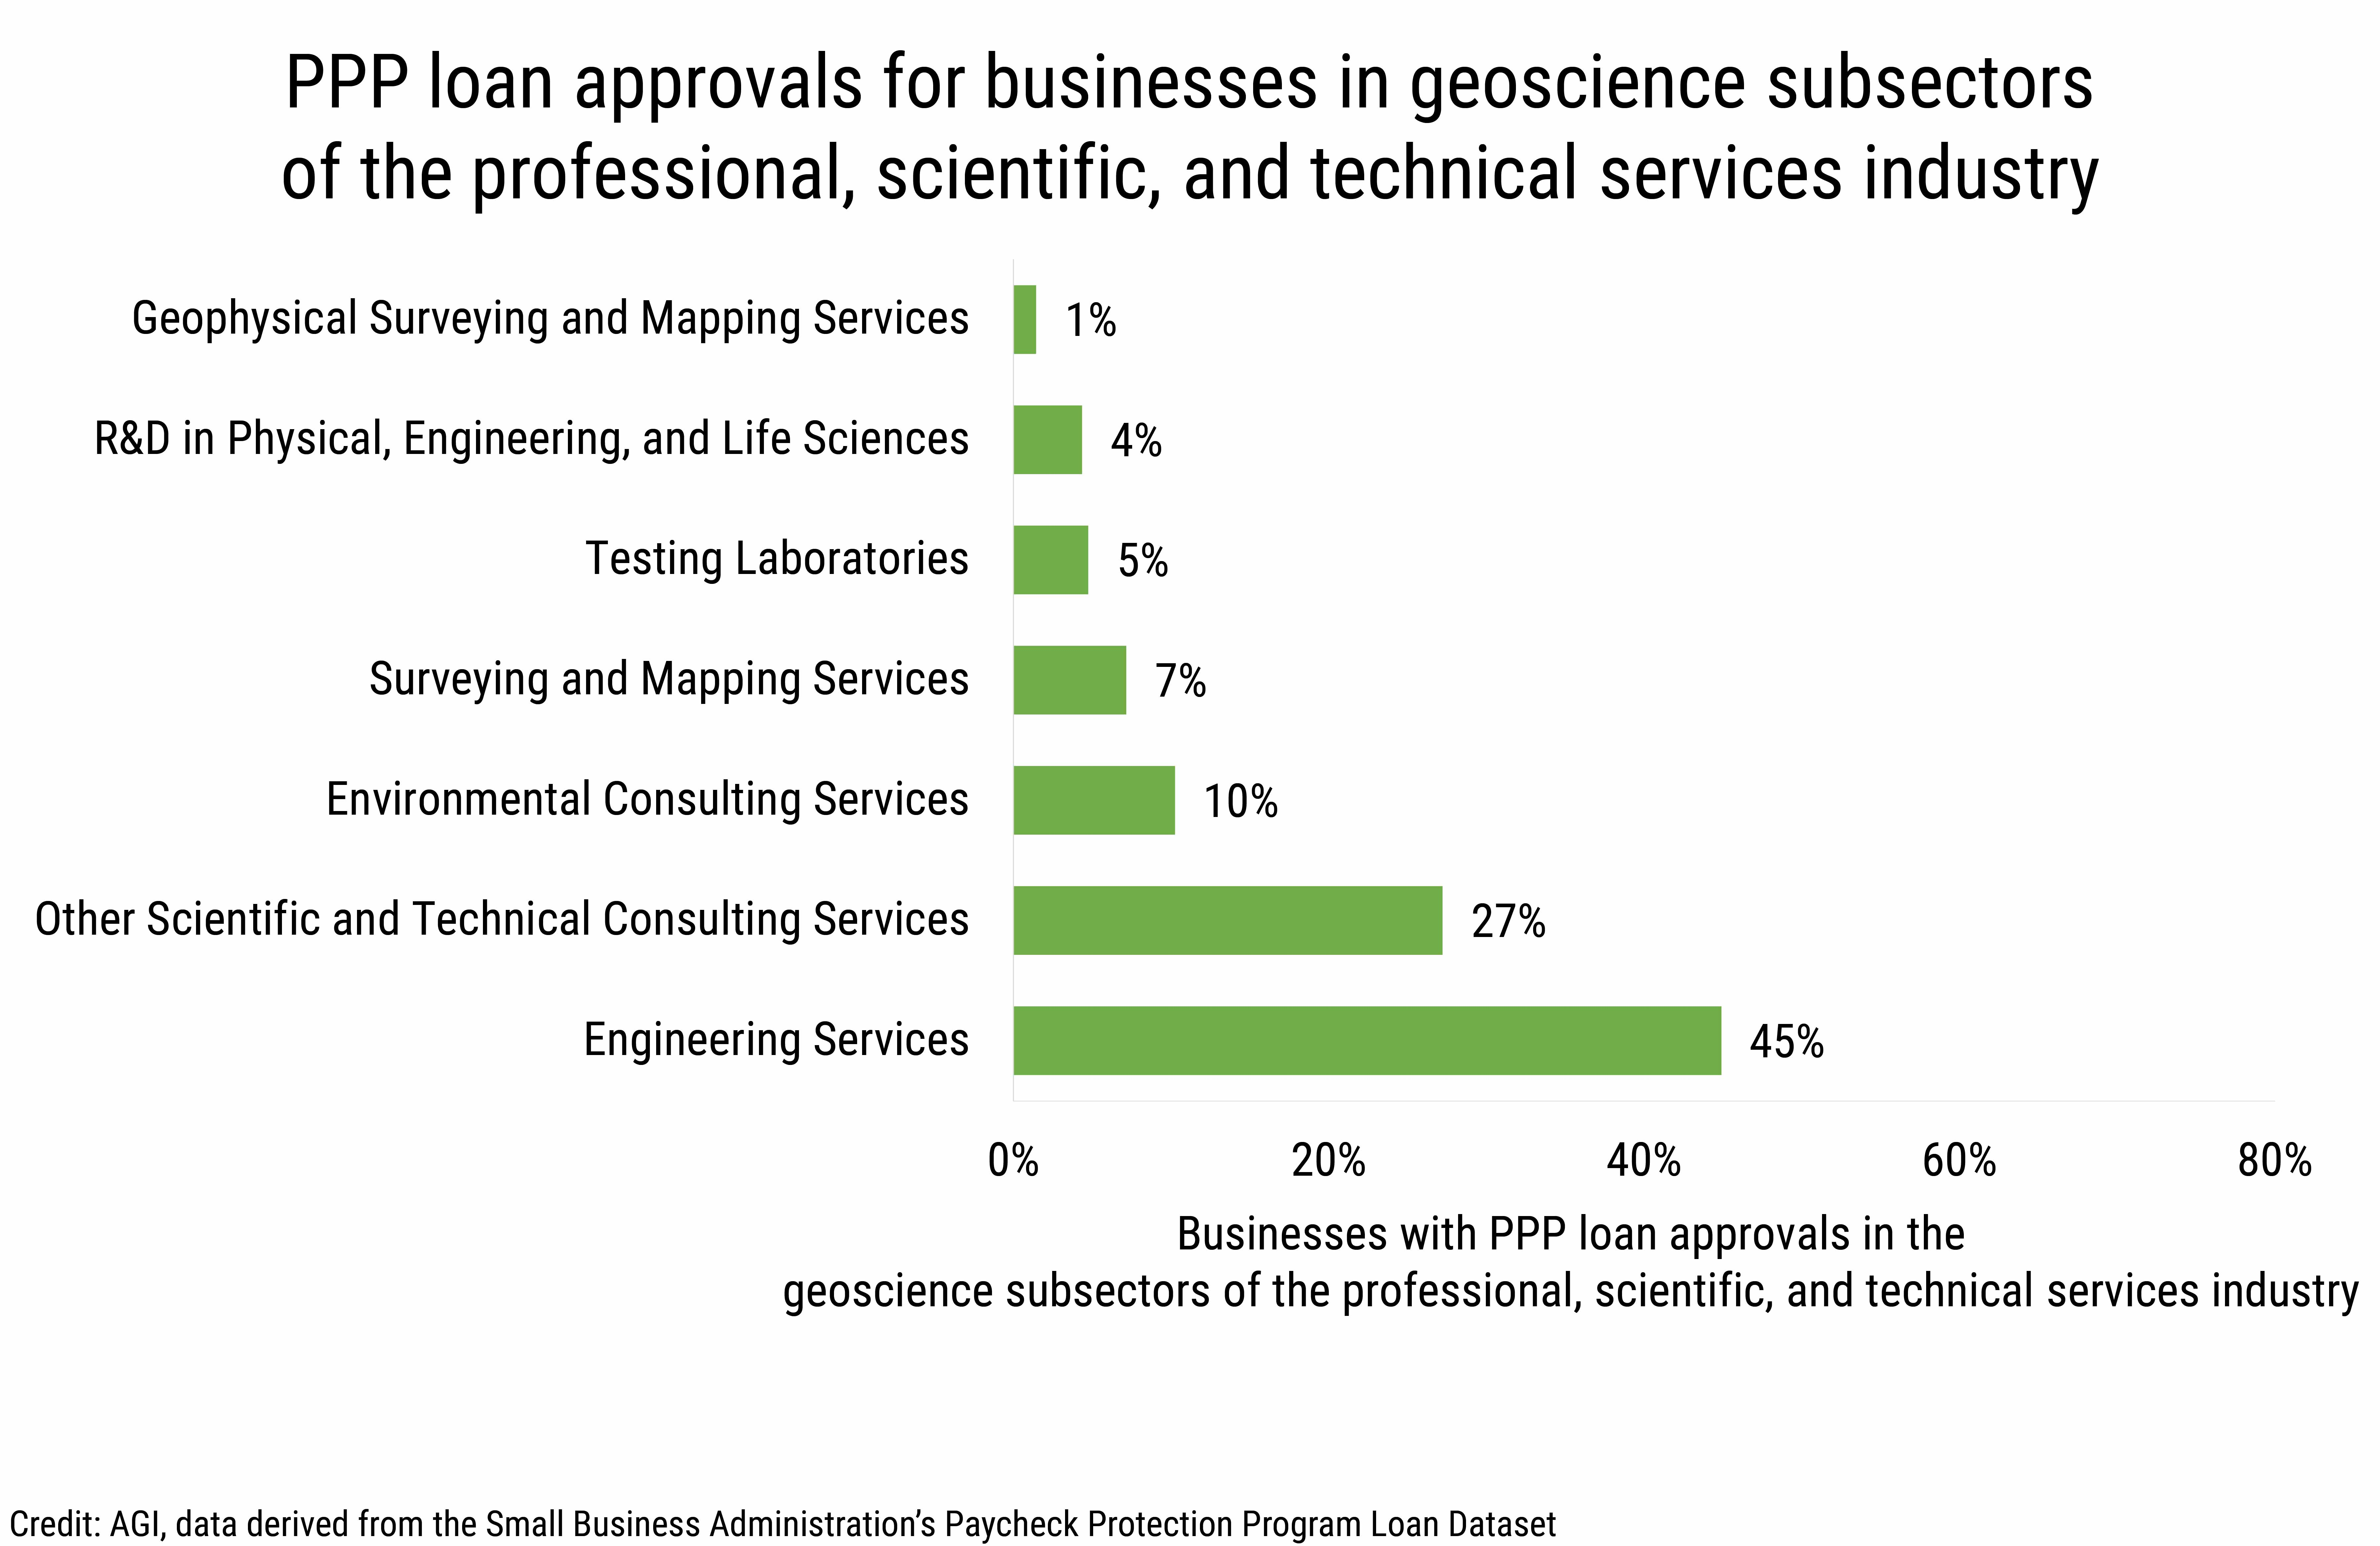 DB_2020-017 chart 02: PPP loan approvals for businesses in geoscience subsectors of the professional, scientific, and technical services industry. (credit: AGI, data derived from the Small Business Administration's Paycheck Protection Program Loan Dataset